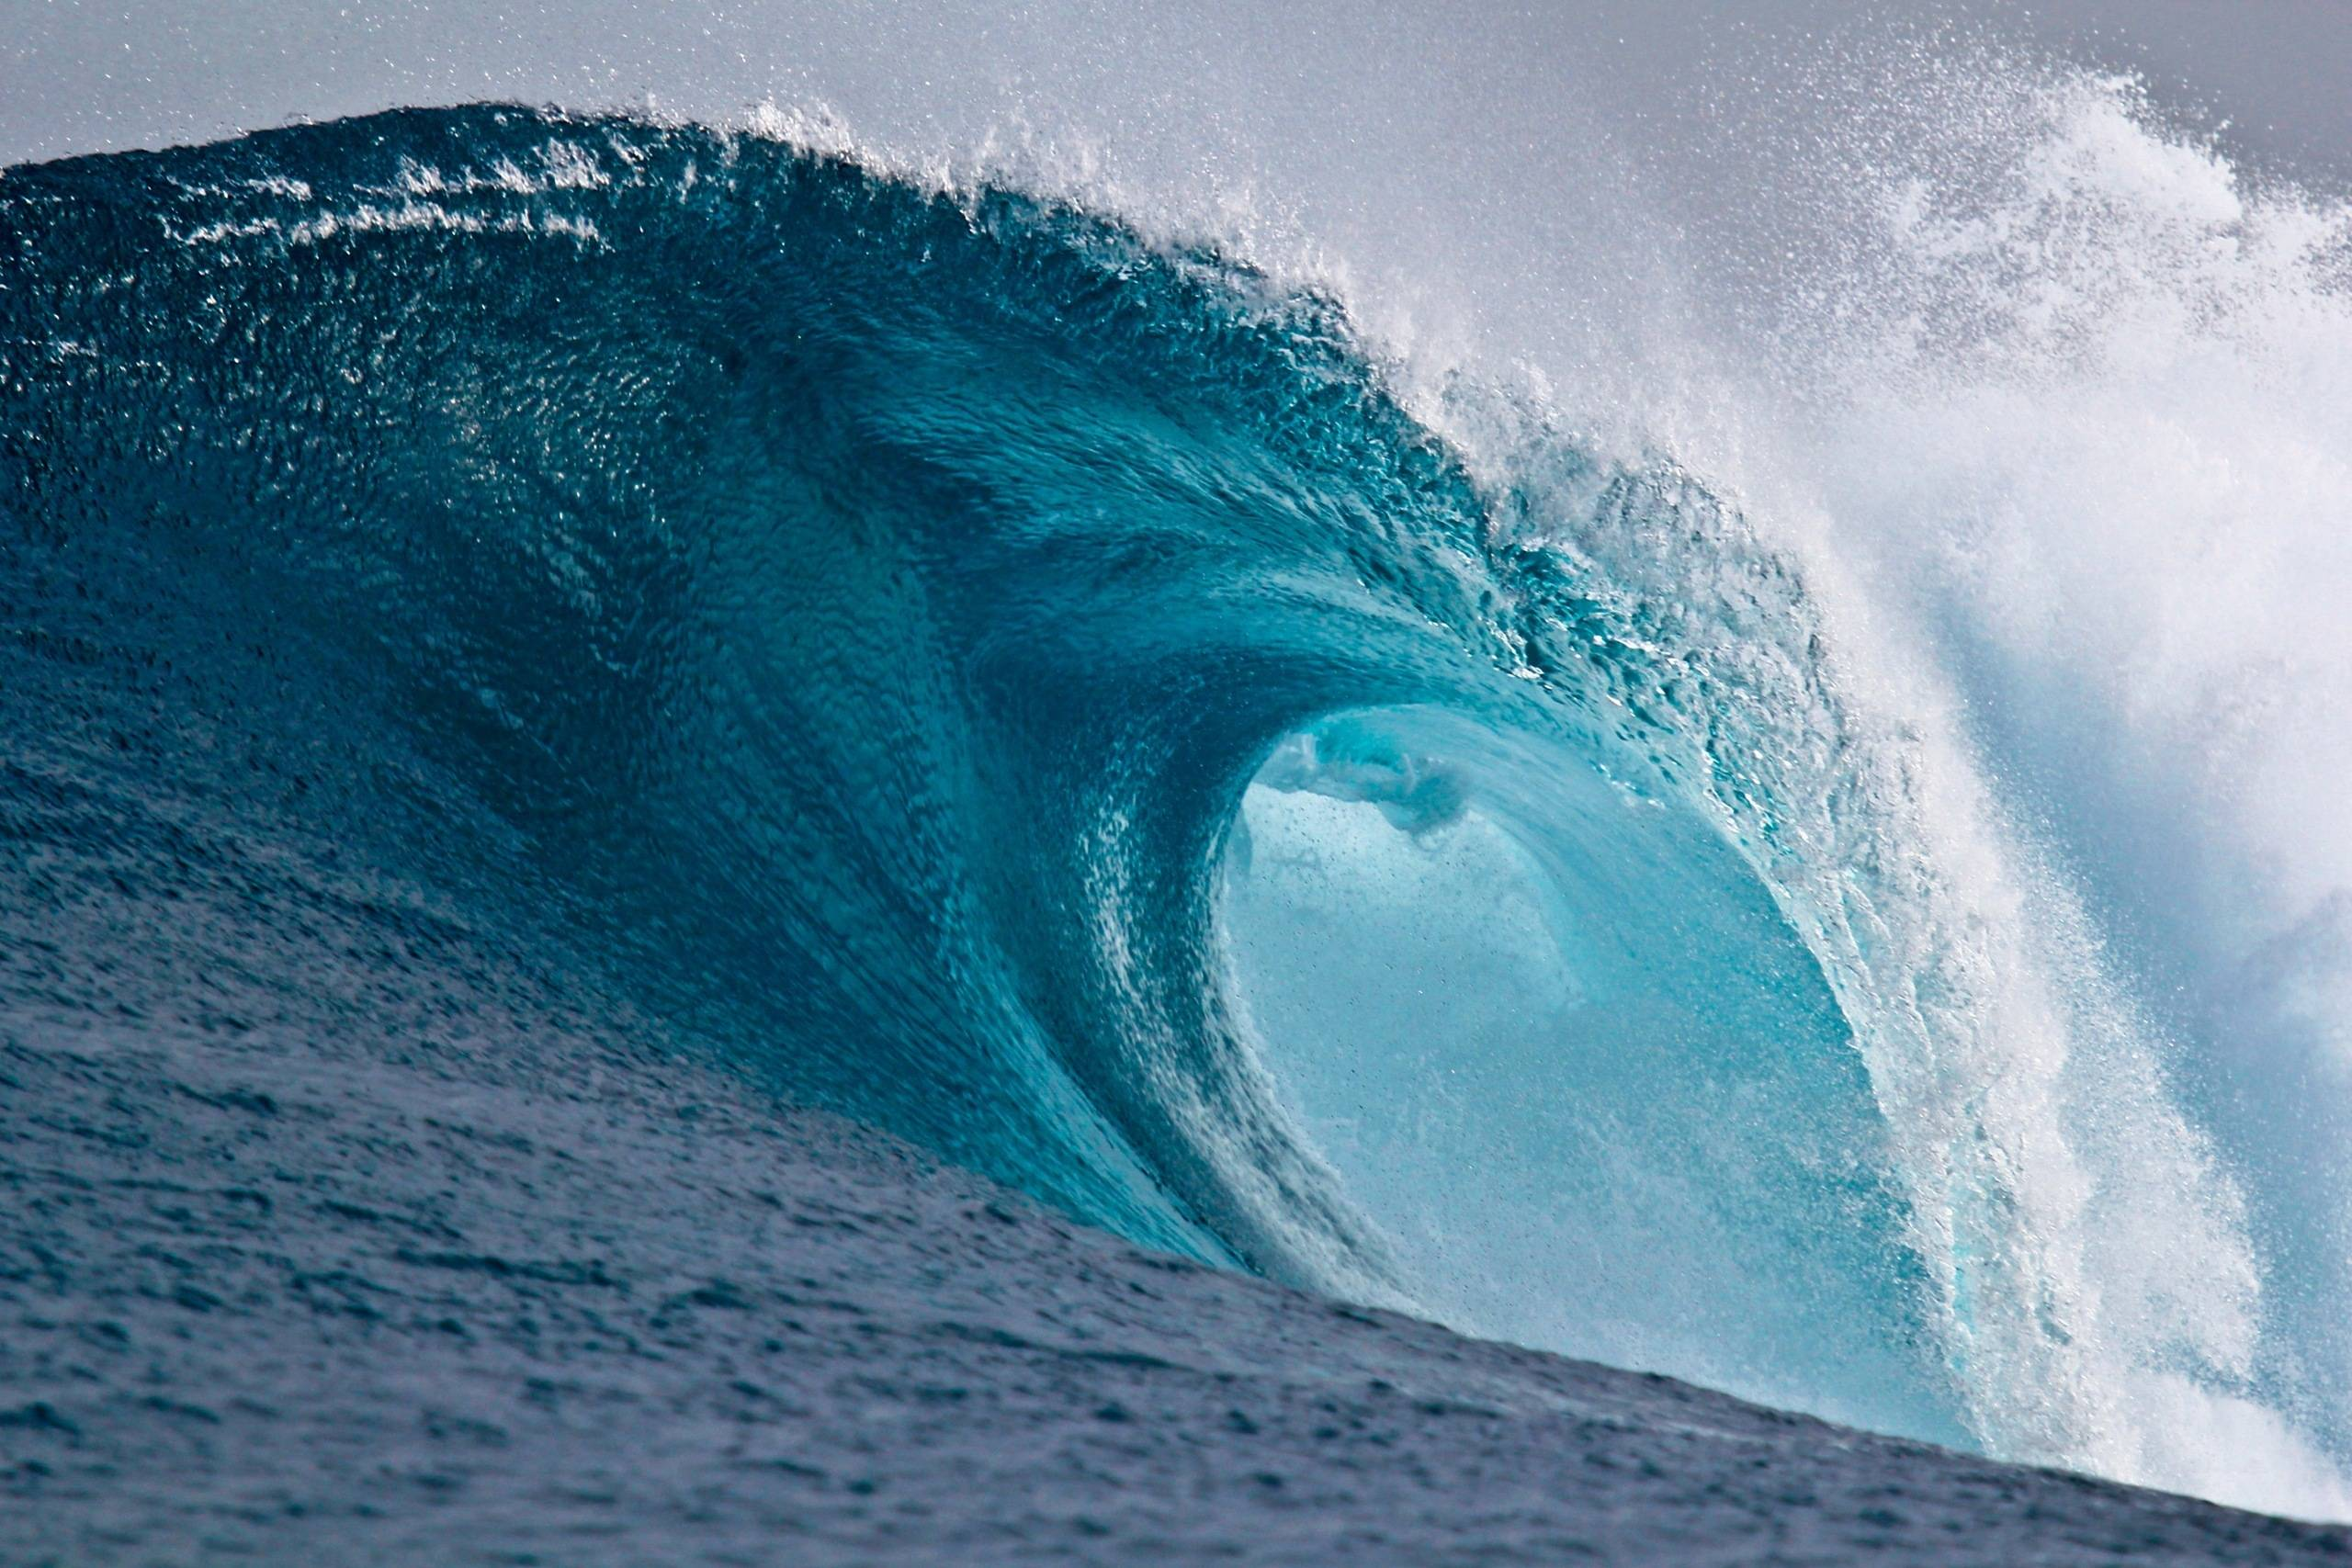 Awesome Wave Wallpapers to Decorate Backgrounds Like an Apple 2560x1707